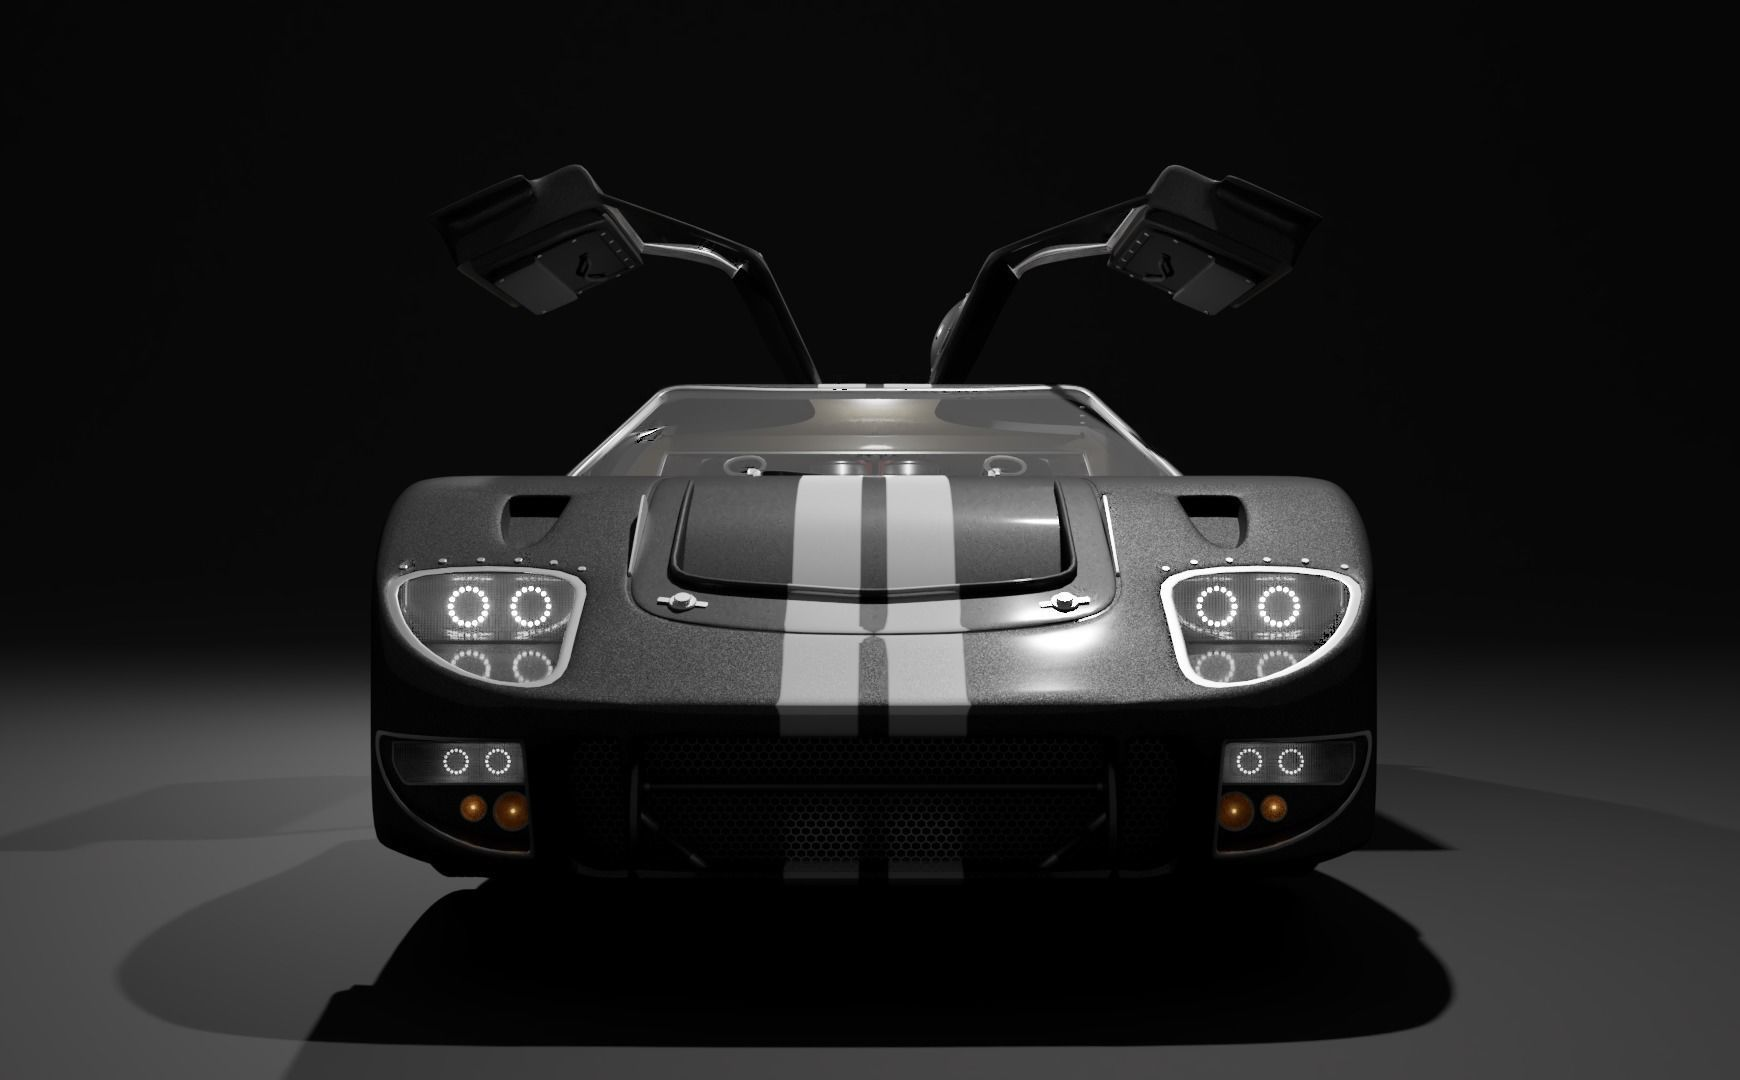 GT40 with Full Interior and Engine